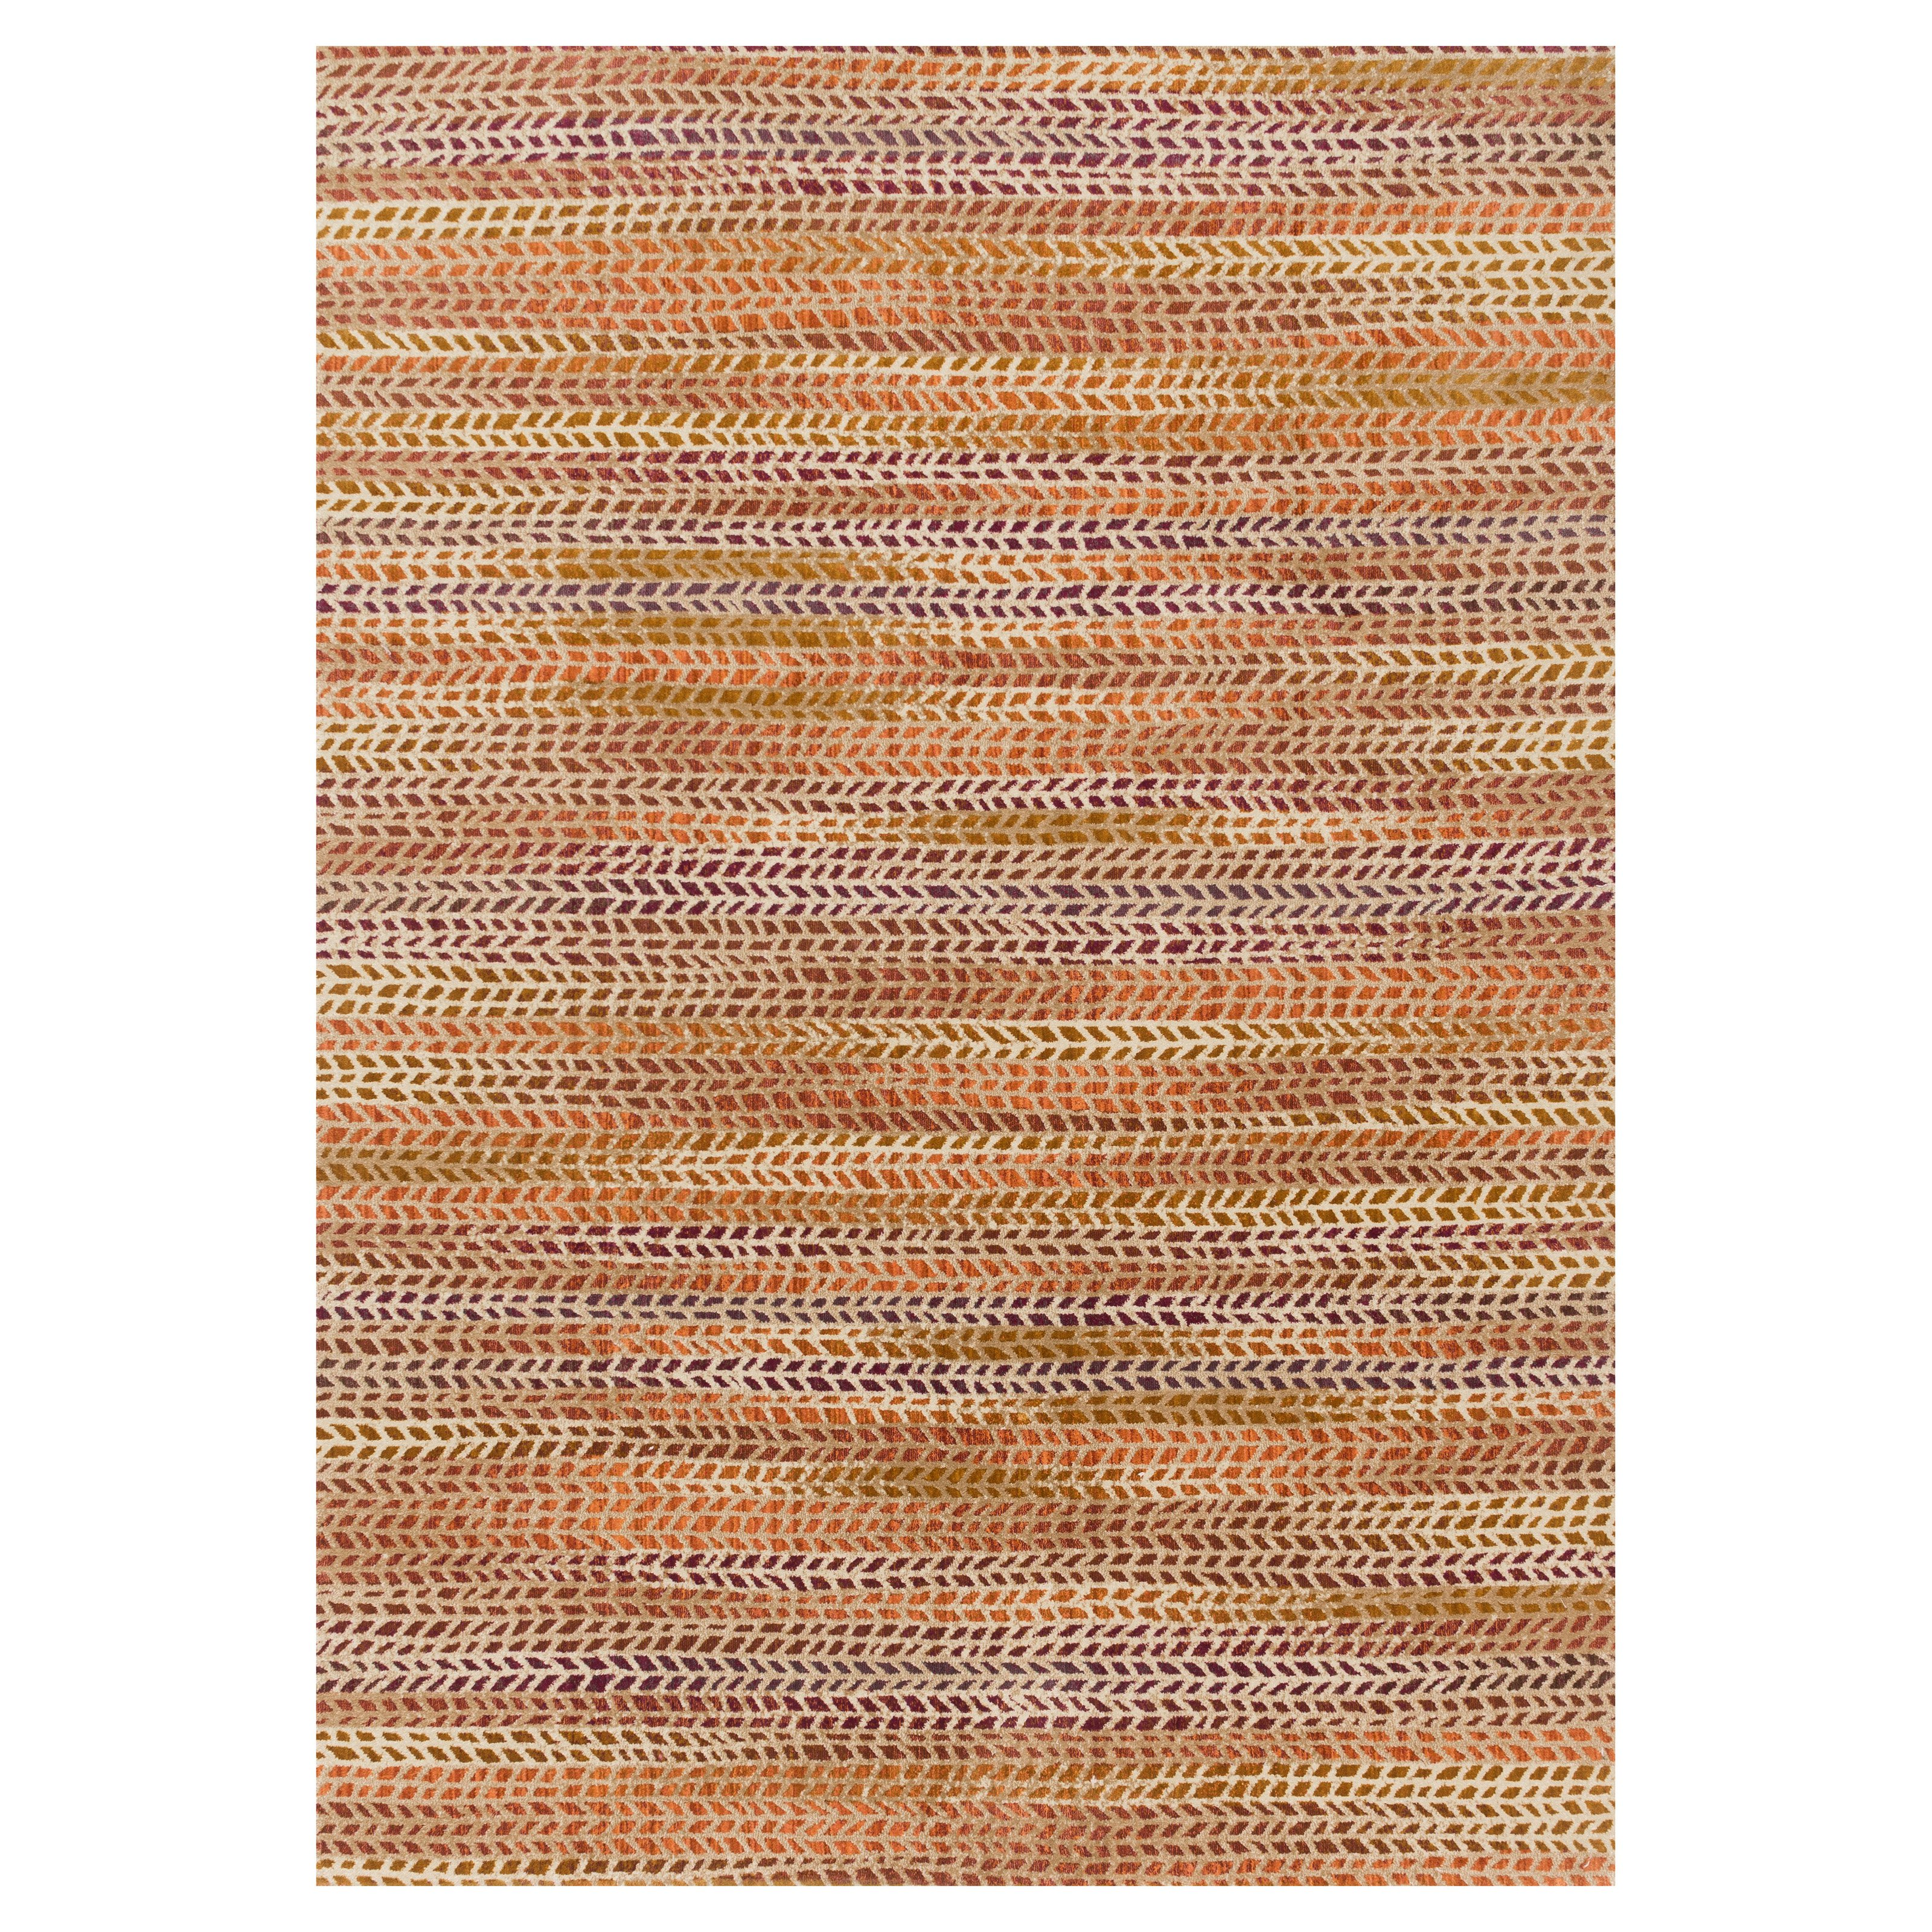 Loloi Dreamscape DM-10 Area Rug